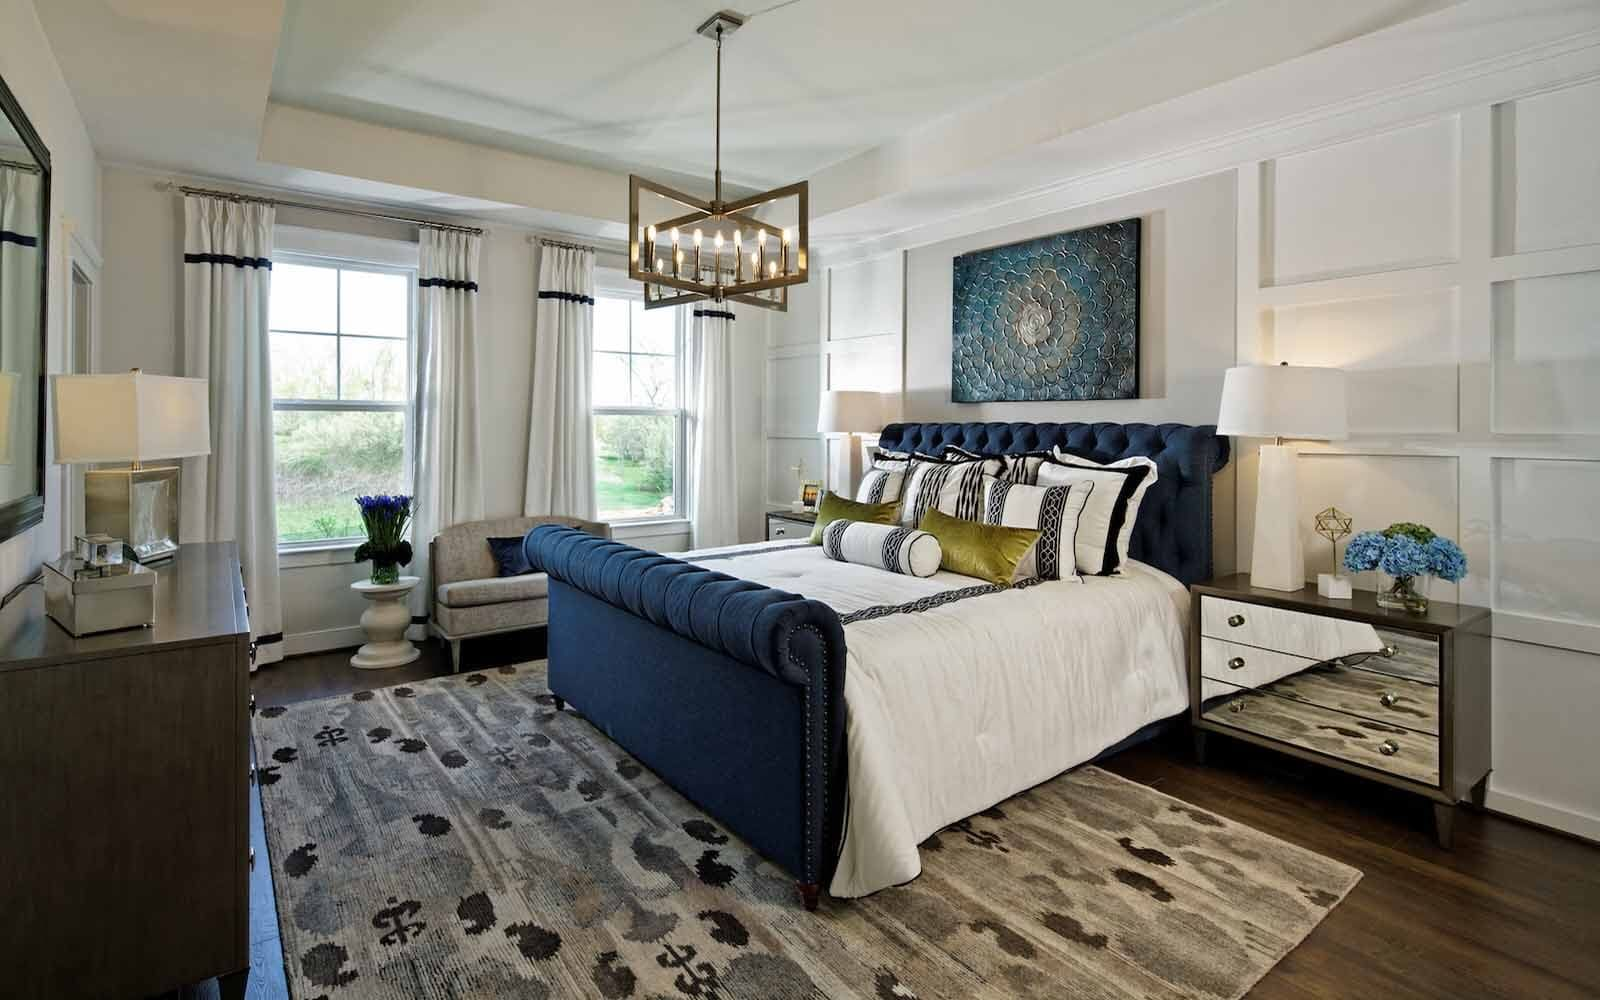 Bedroom featured in the Cresswell By Brookfield Residential in Washington, VA